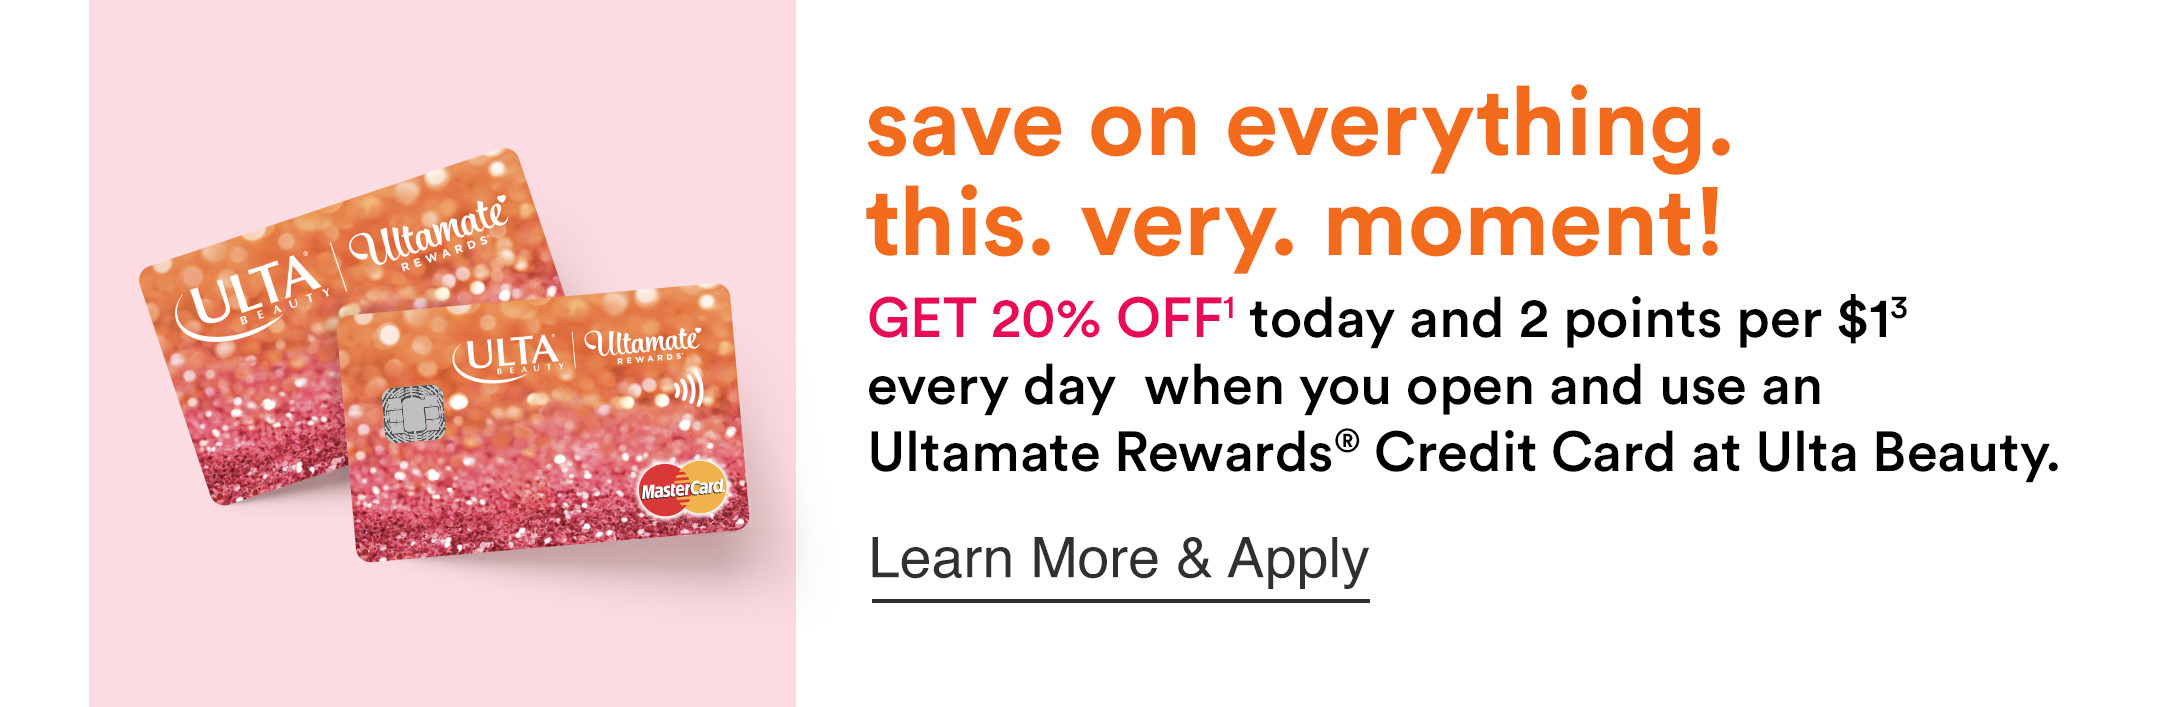 Get 20% Off today and 2 points per $1 every day when you open anduse an Ultamate Rewards Crdit Card at Ulta Beauty